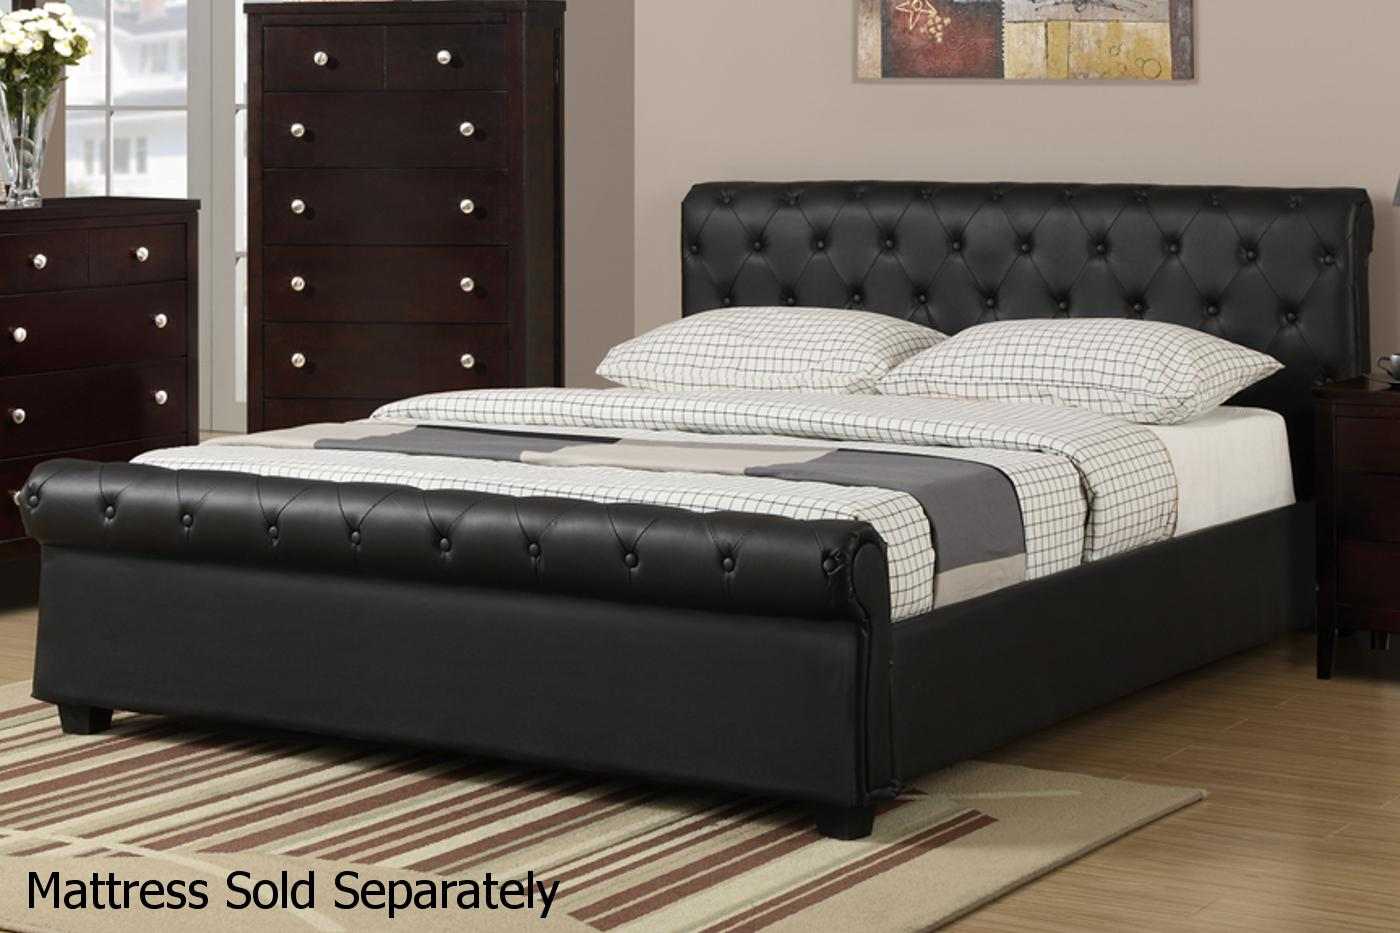 Queensize Kingsize Black Leather Queen Size Bed Steal A Sofa Furniture